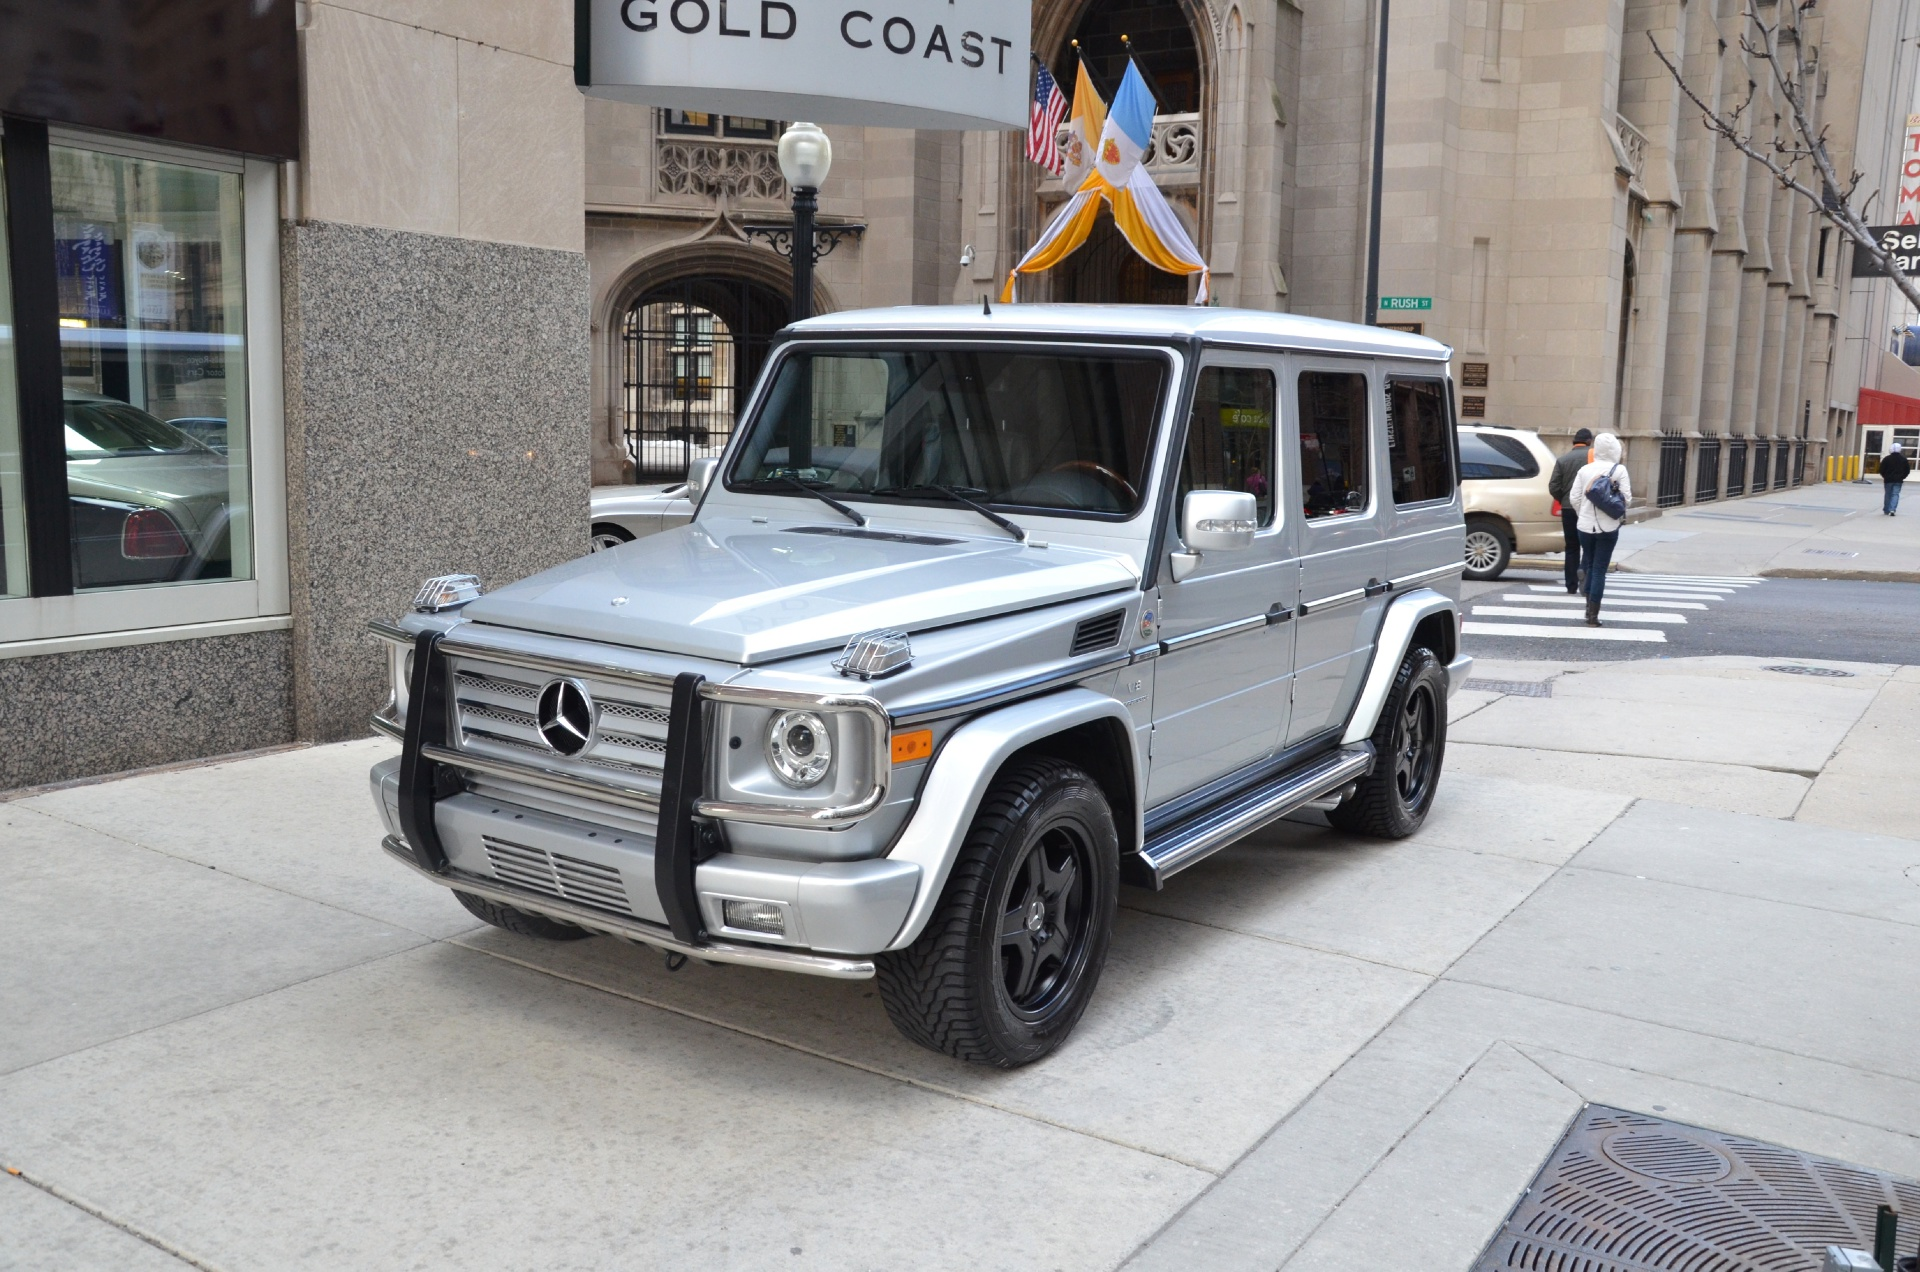 2005 mercedes benz g class g55 amg used bentley used for 2005 mercedes benz g55 amg